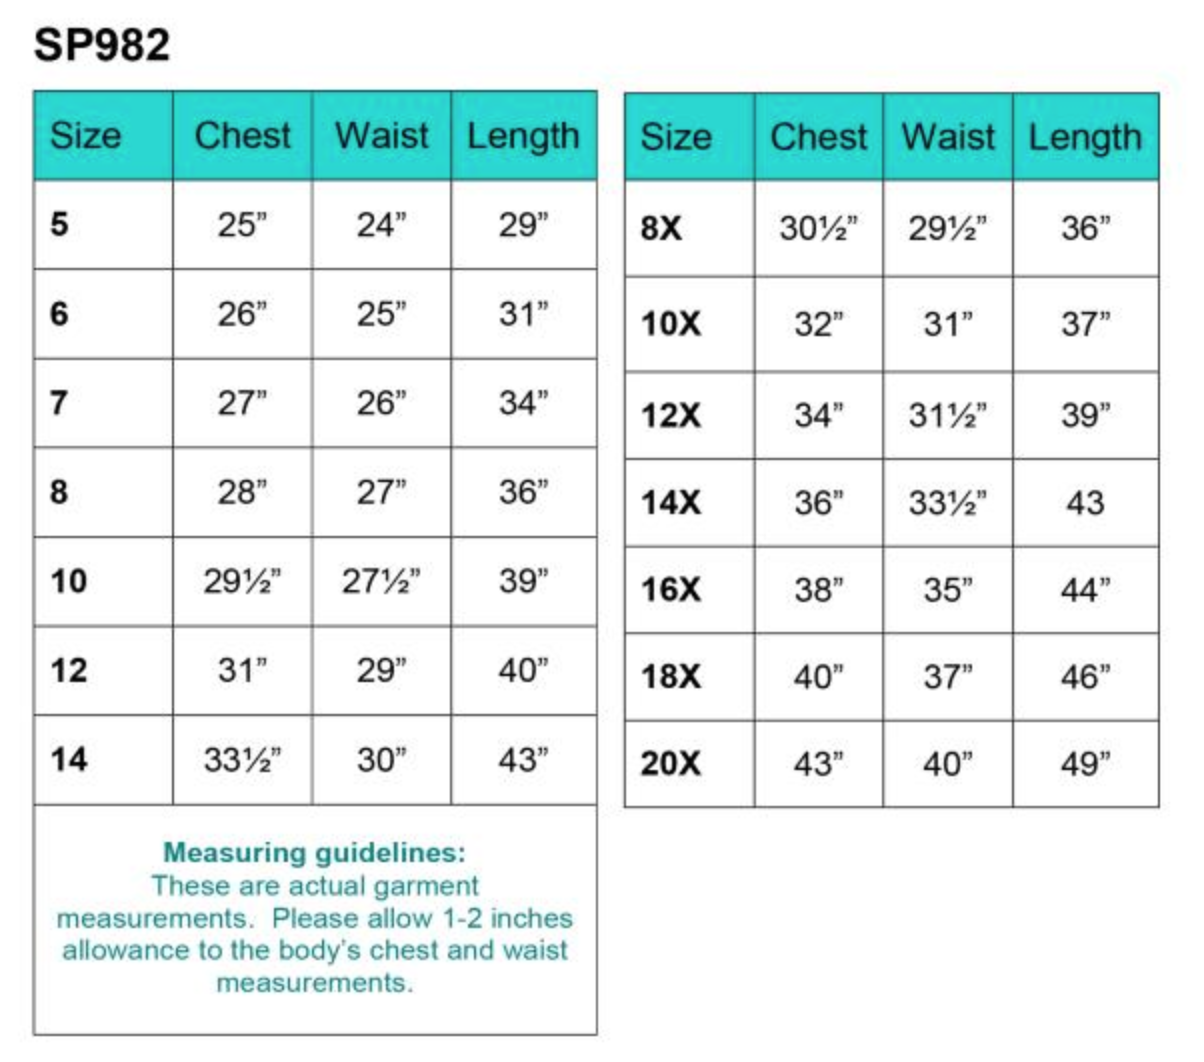 sizing-chart-sp982.png